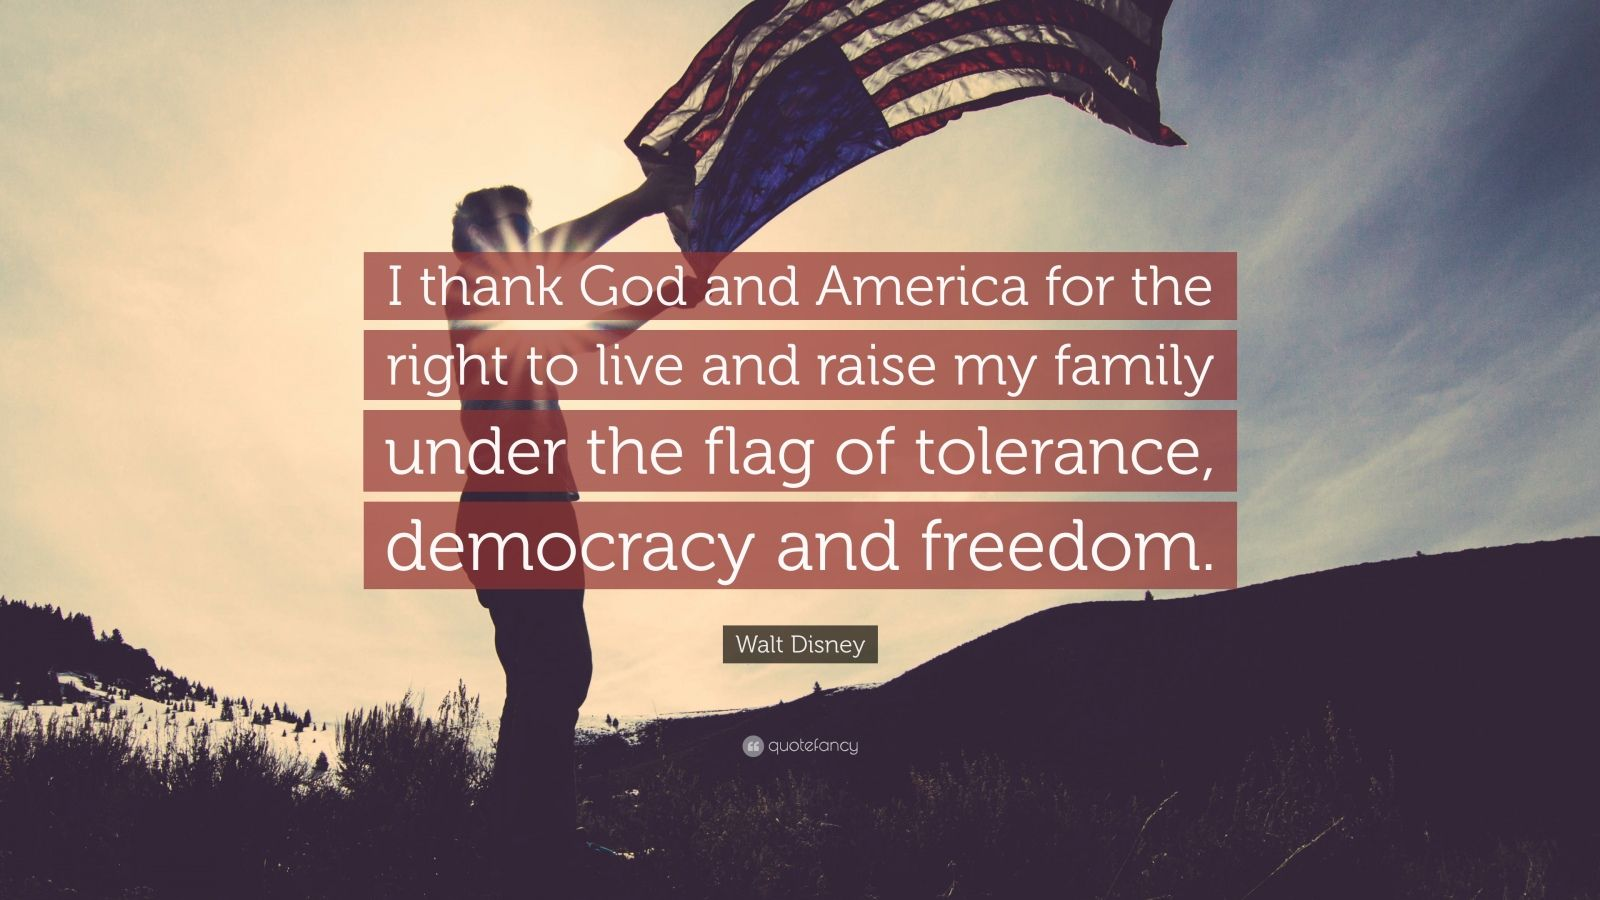 """Walt Disney Quote: """"I thank God and America for the right to live and raise my family under the flag of tolerance, democracy and freedom."""""""